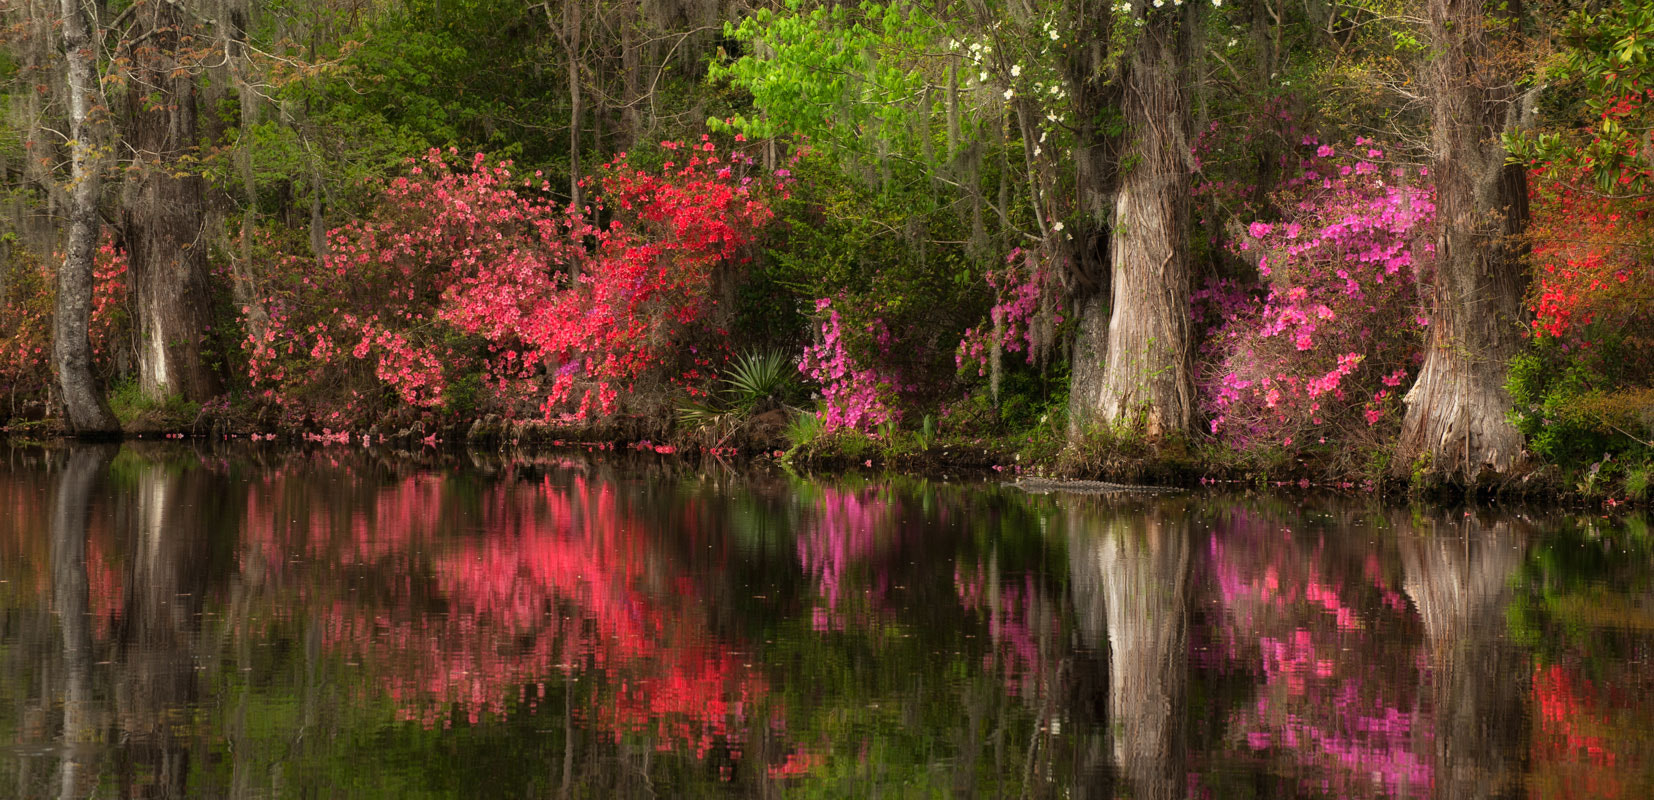 Photograph Lowcountry Reflections by Donna Eaton on 500px